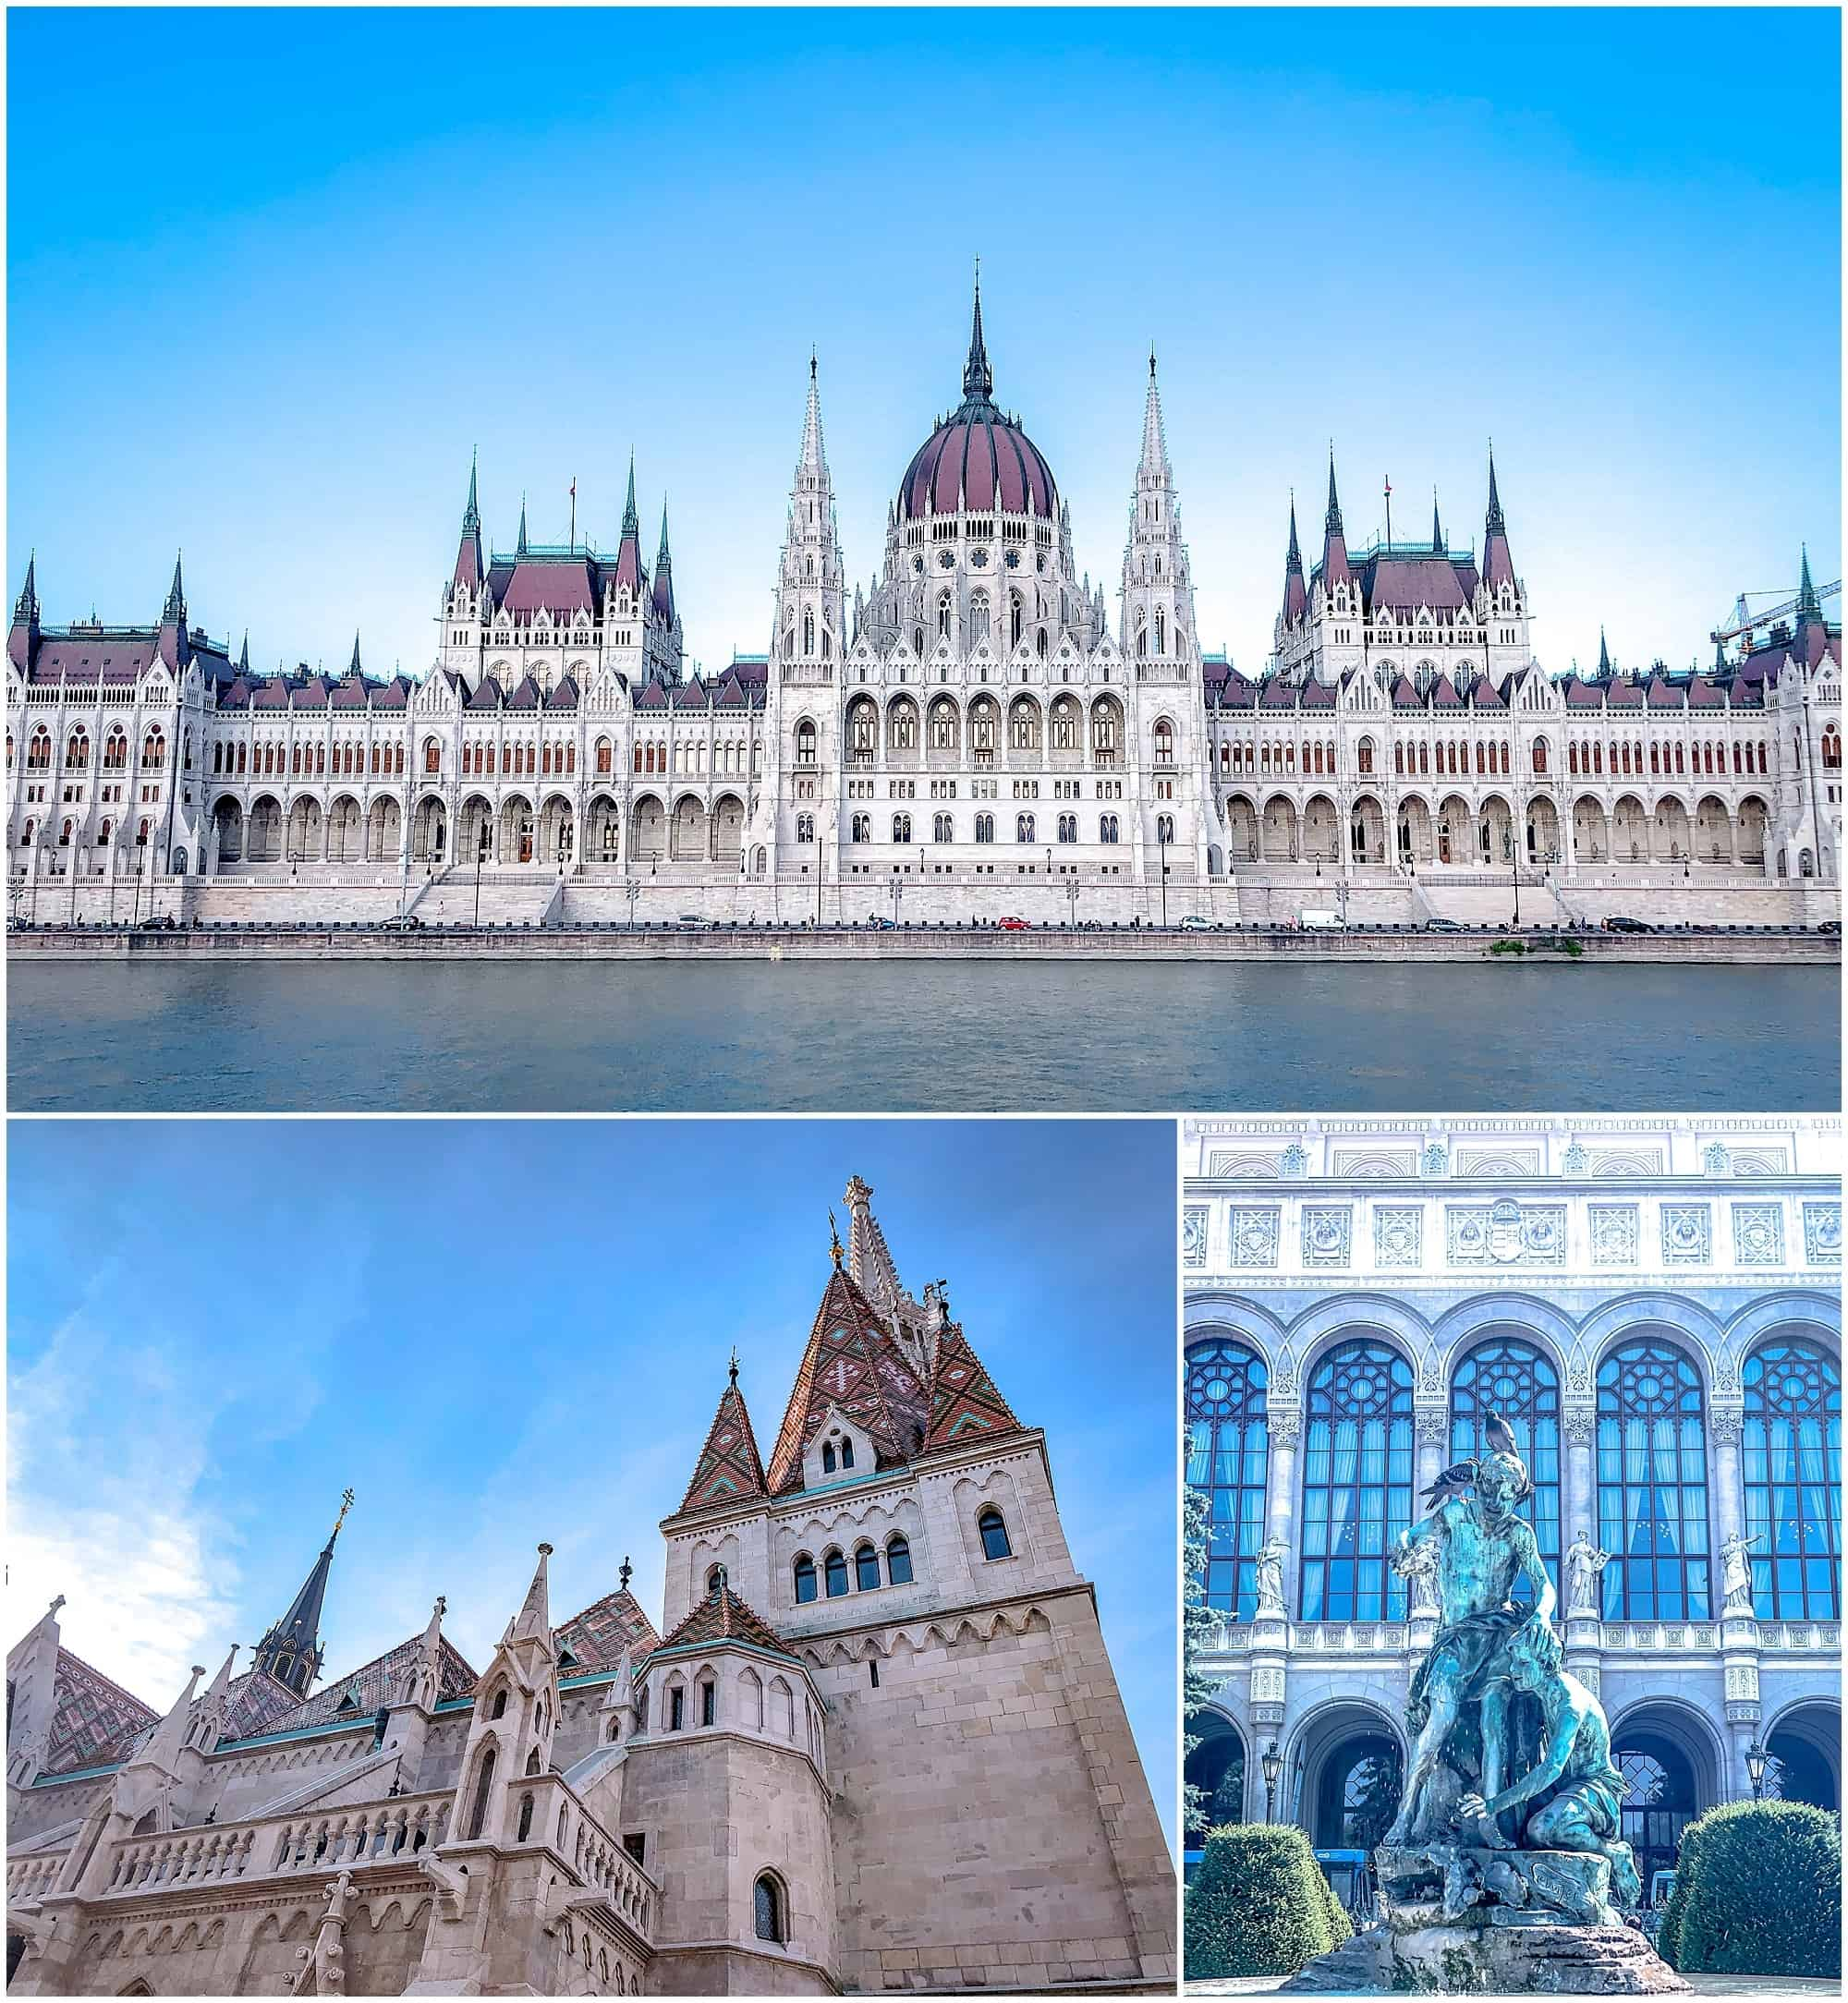 River view of Budapest parliament buildings